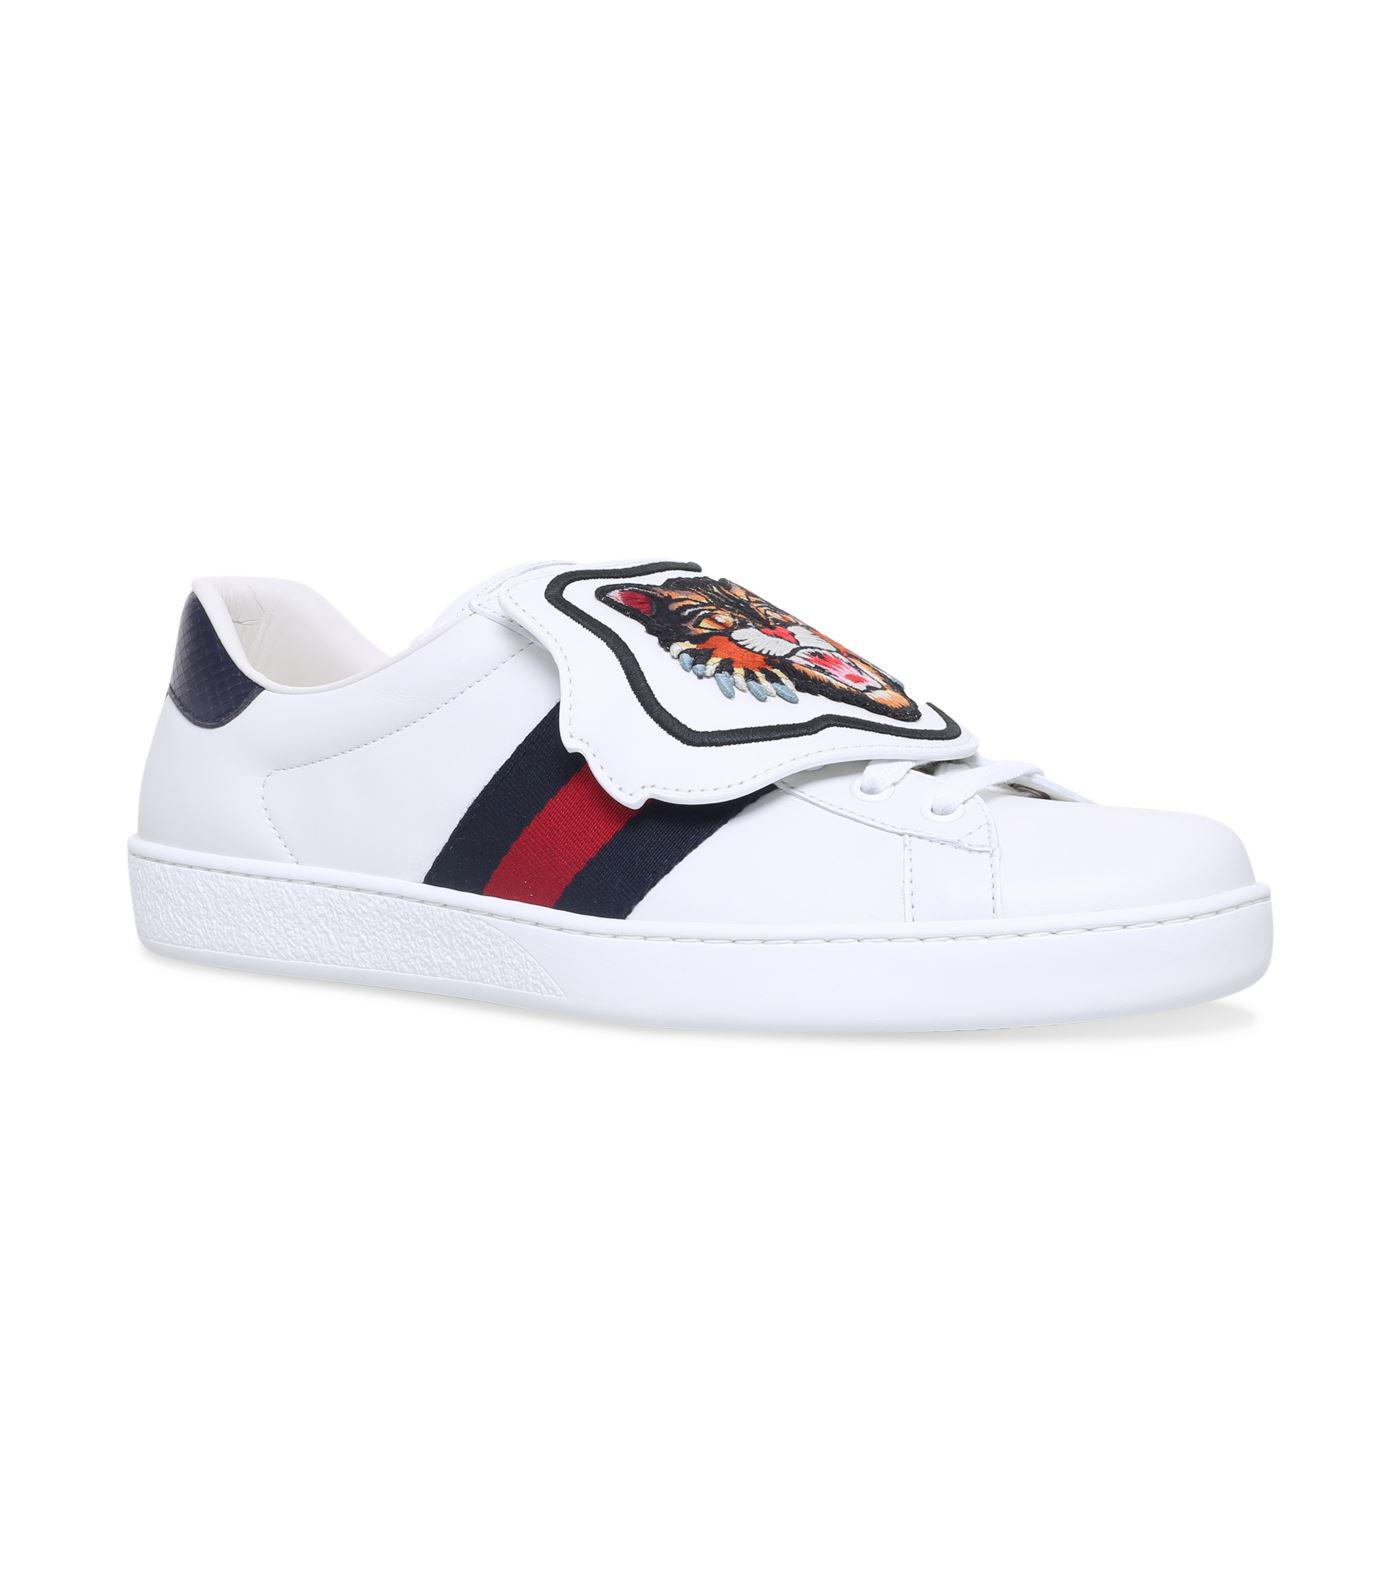 6d714ff2876 Lyst - Gucci New Ace Tiger Patch Sneakers in White for Men